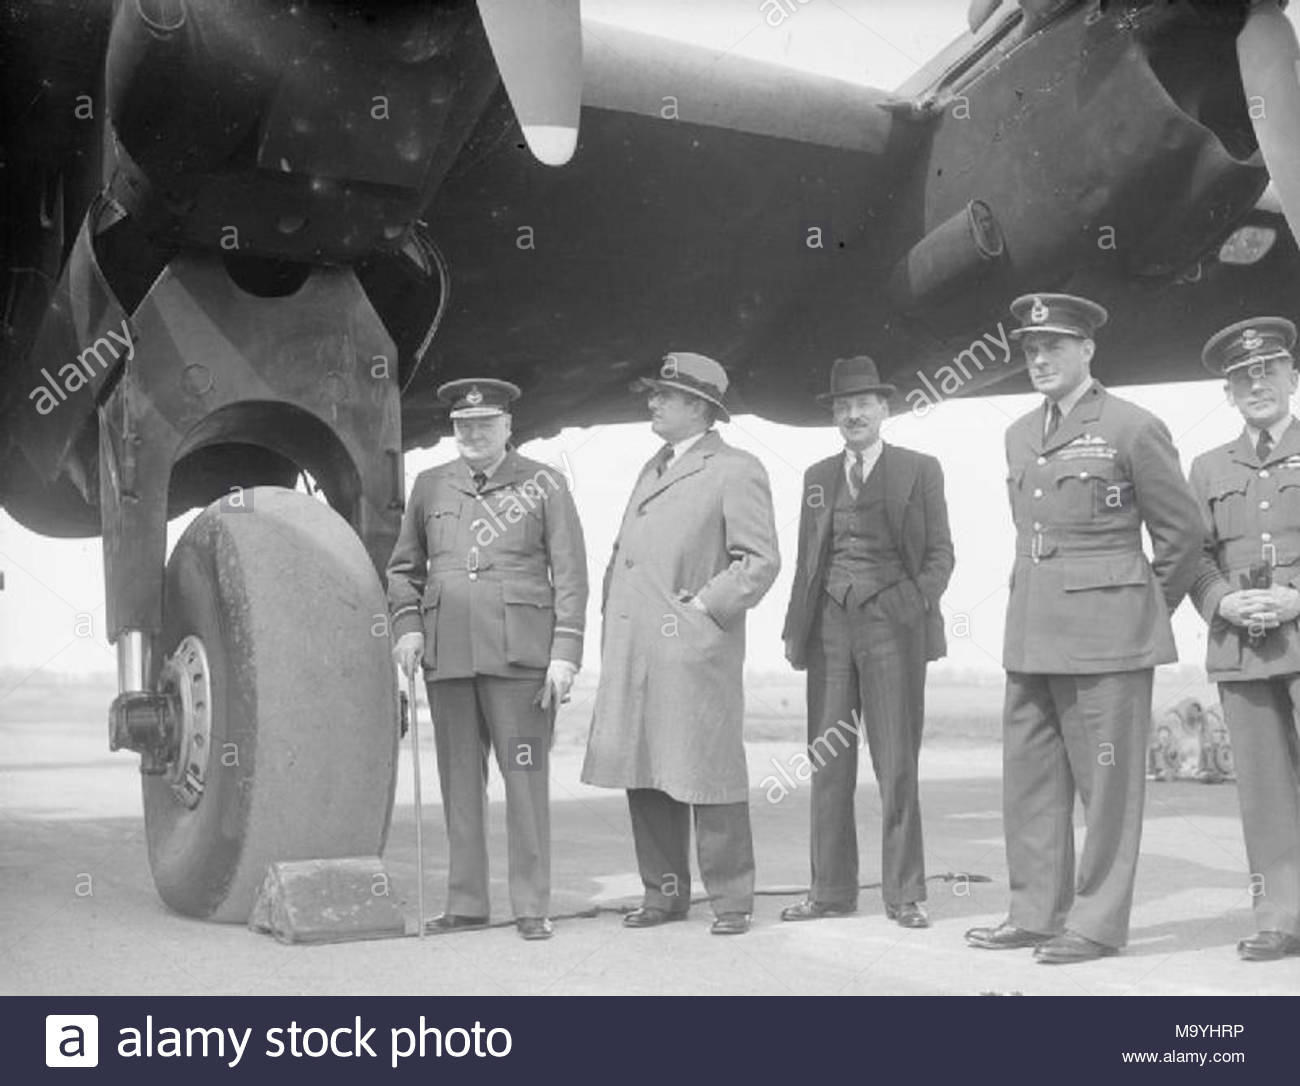 Royal Air Force 1939-1945- Bomber Command Winston Churchill, in the uniform of an Air Commodore, with Dr H V Evatt (Australian Minister for External Affairs), Clement Attlee (Deputy Prime Minister) and Air Vice-Marshal C R Carr (AOC No 4 Group) during a visit to a Yorkshire-based Halifax squadron on 15 May 1942. - Stock Image